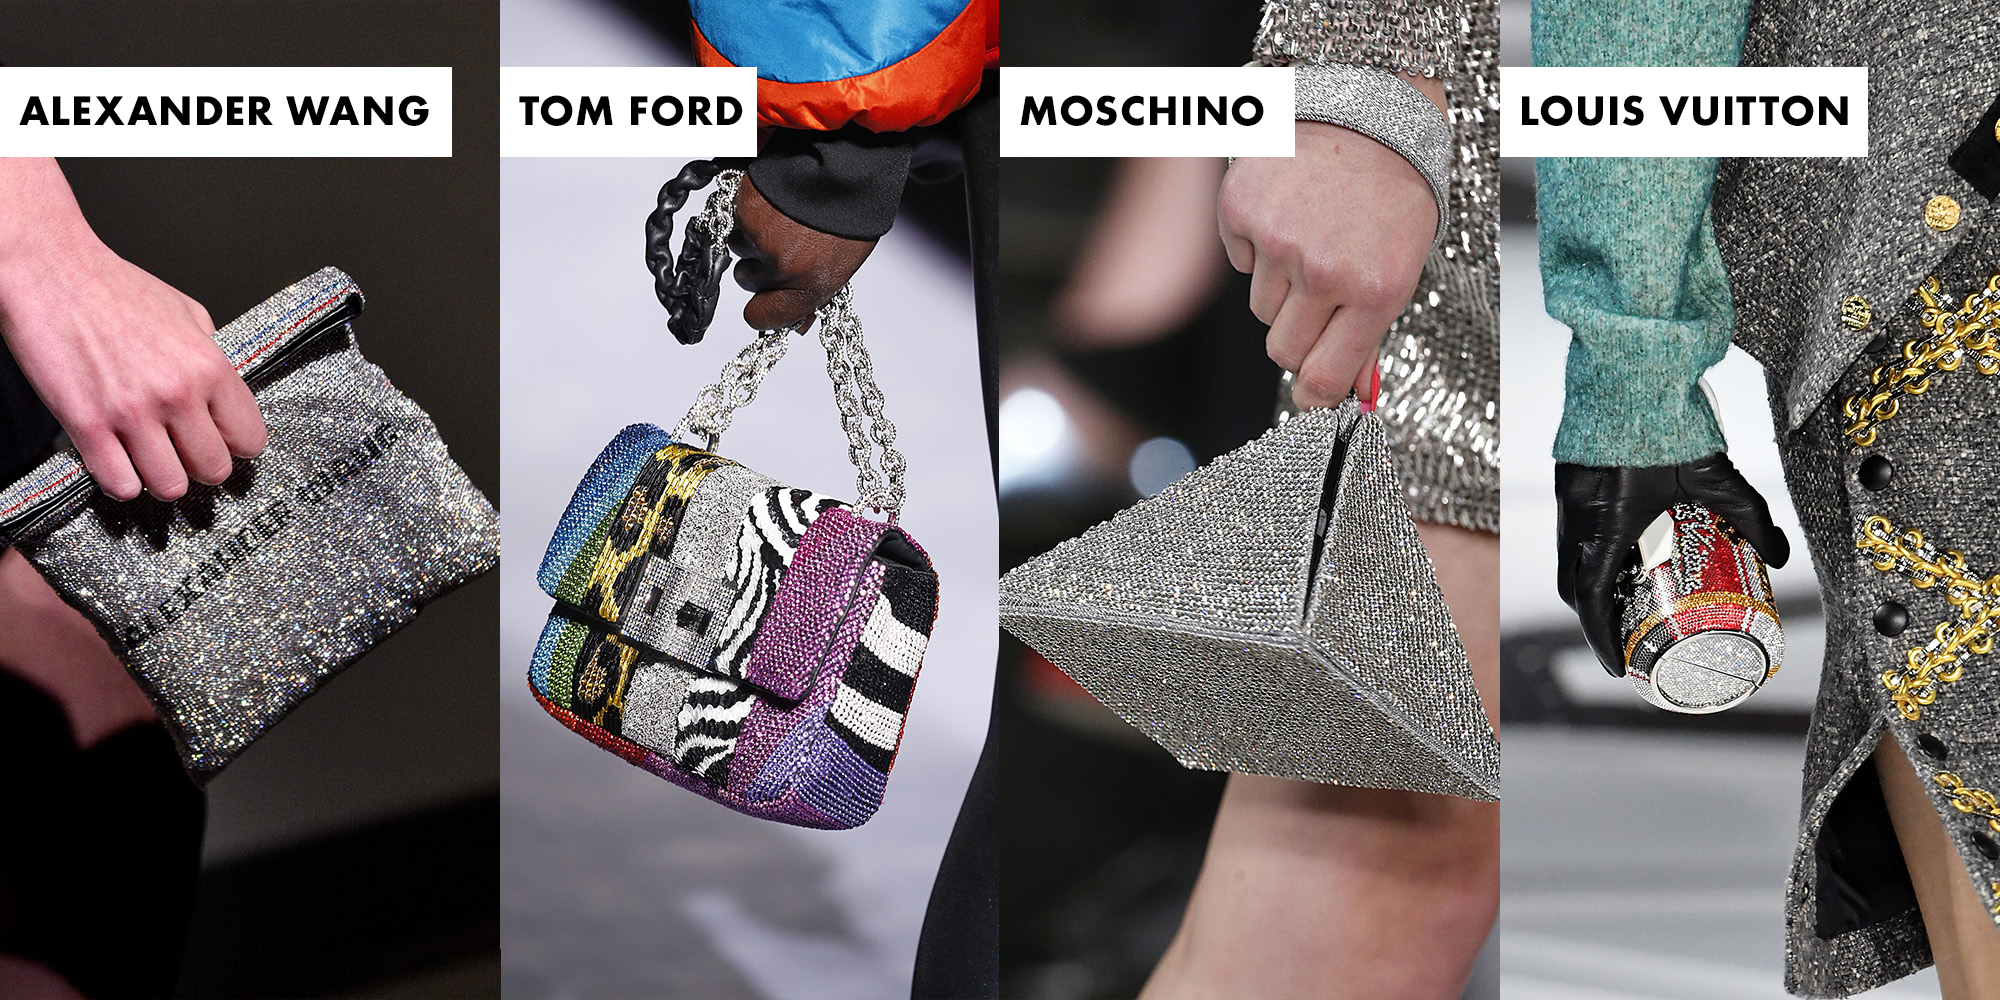 Fall Bag Trends 2018 - The Bags We Need From NYFW Fall 2018 fba3c25c0f3c1